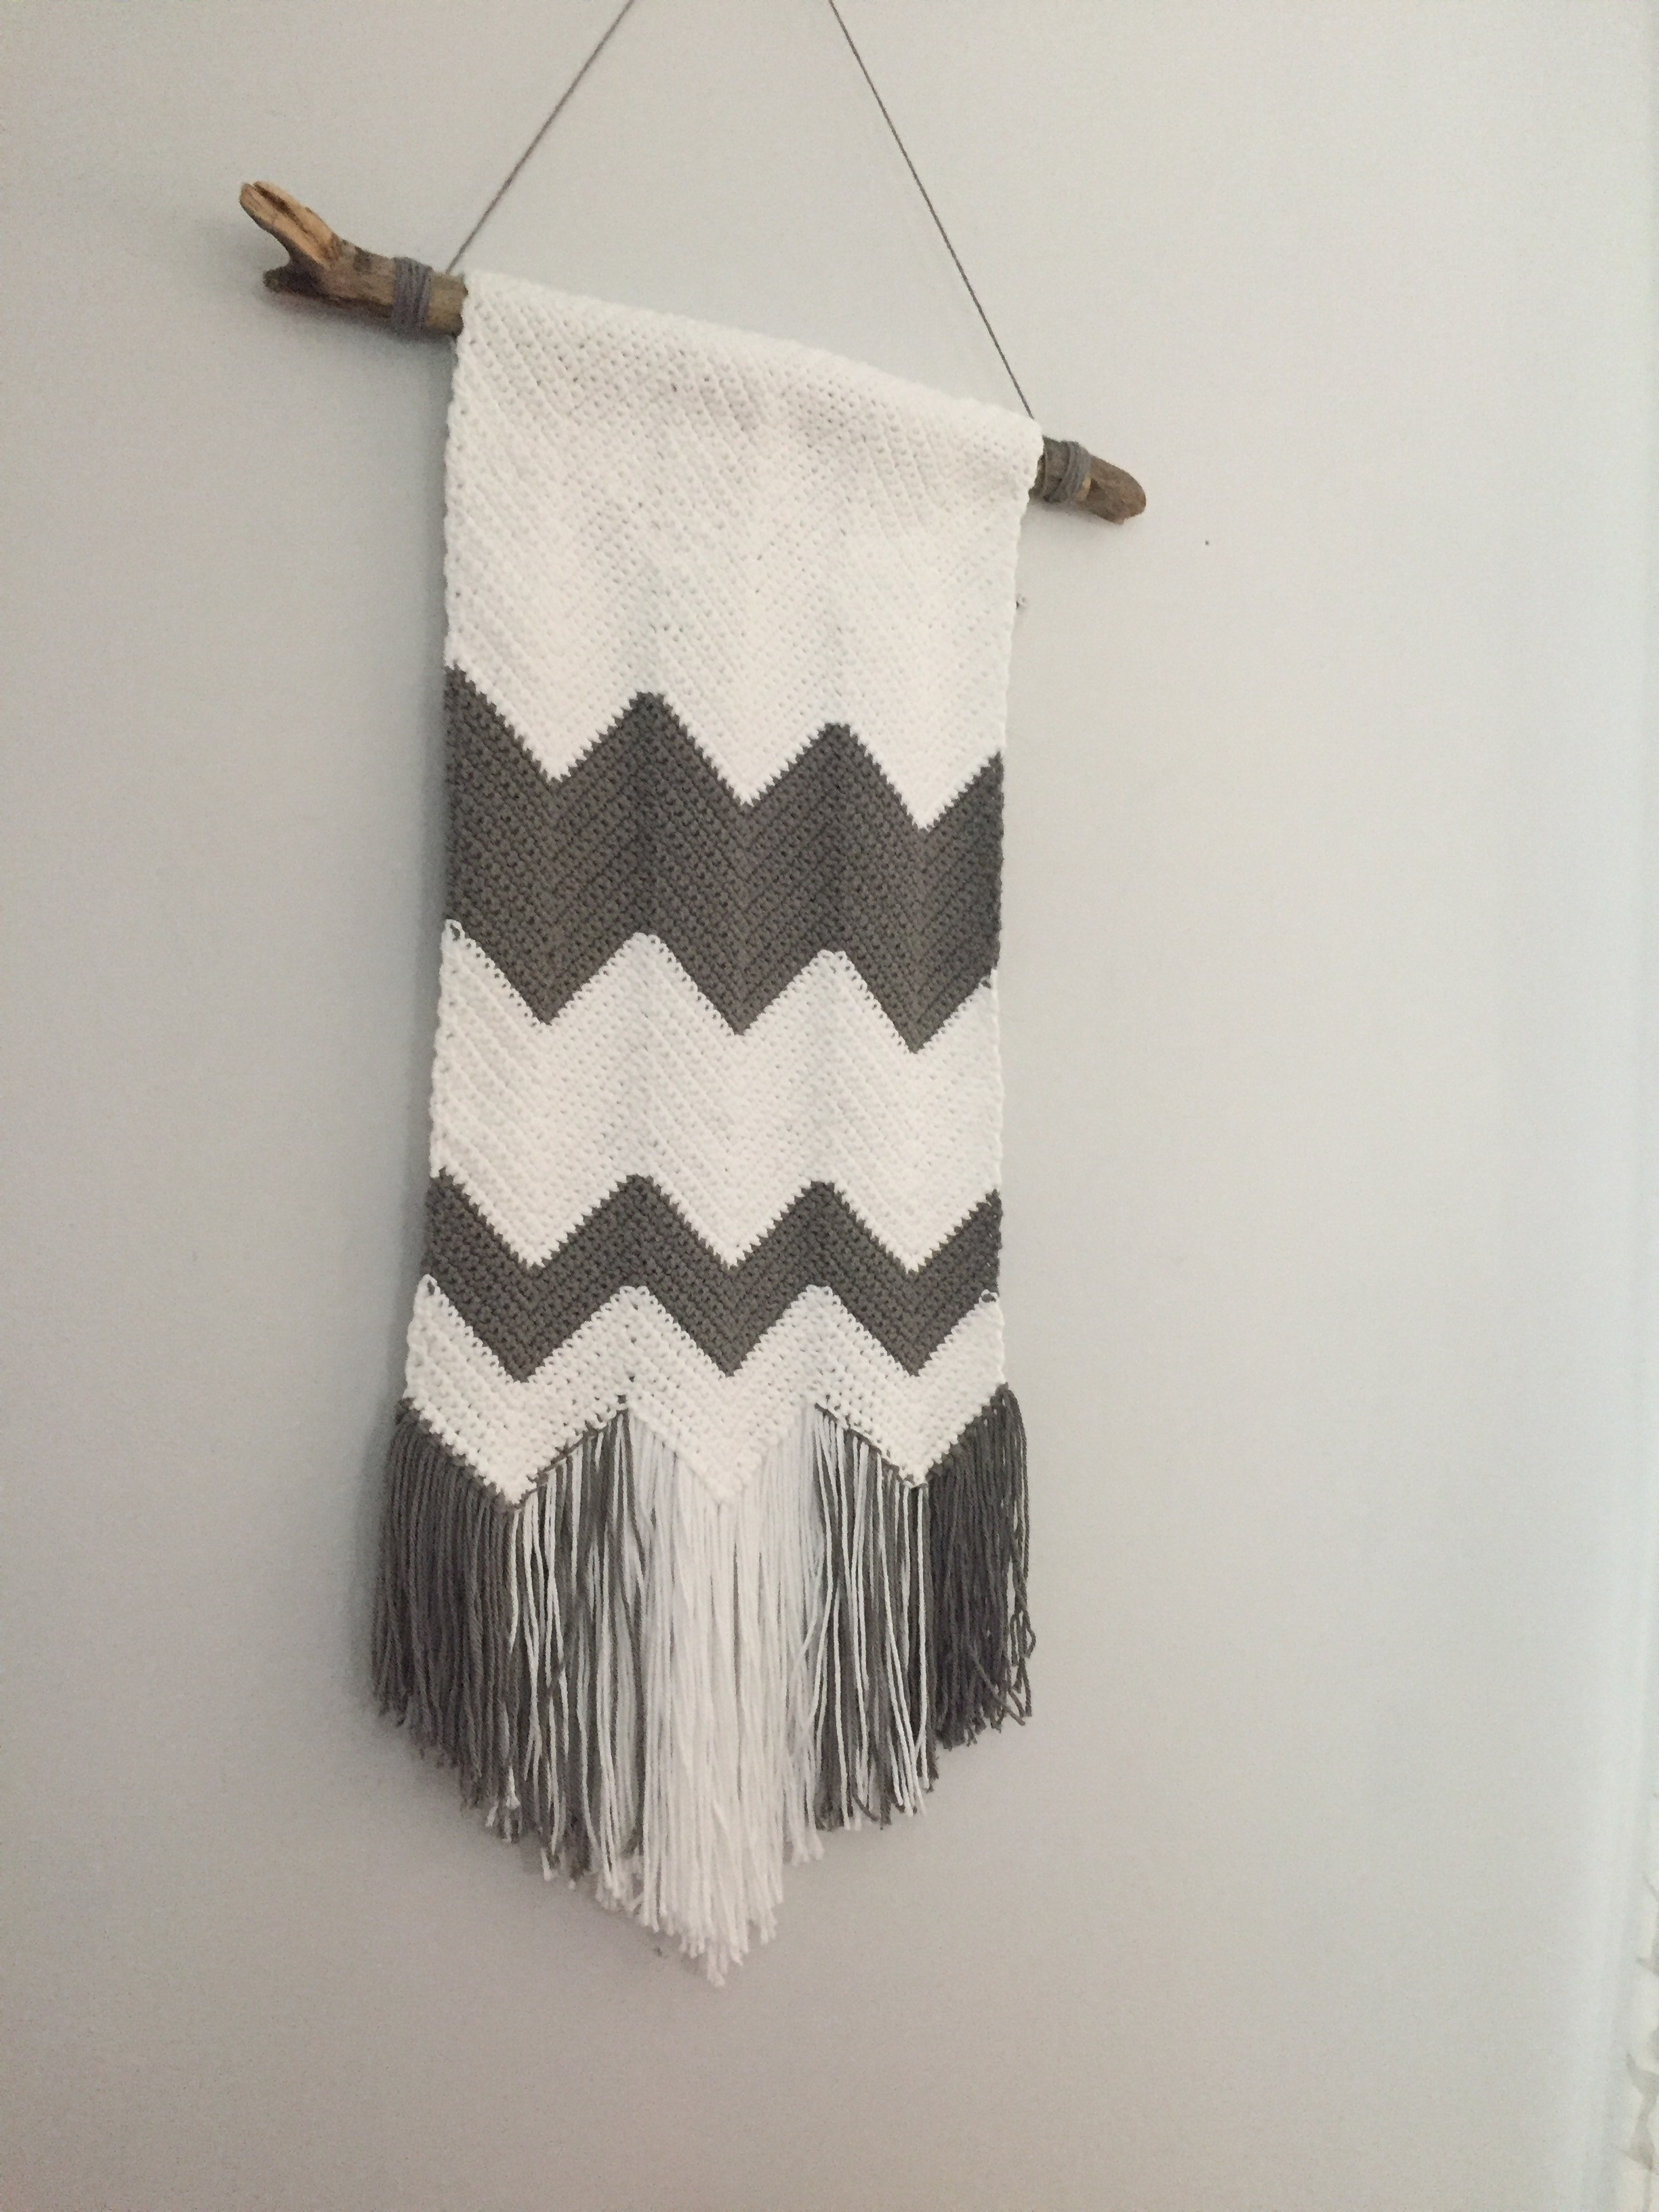 Crochet Chevron Wall Hanging - Free Pattern - Rustic Stitches intended for Crochet Wall Art (Image 4 of 20)